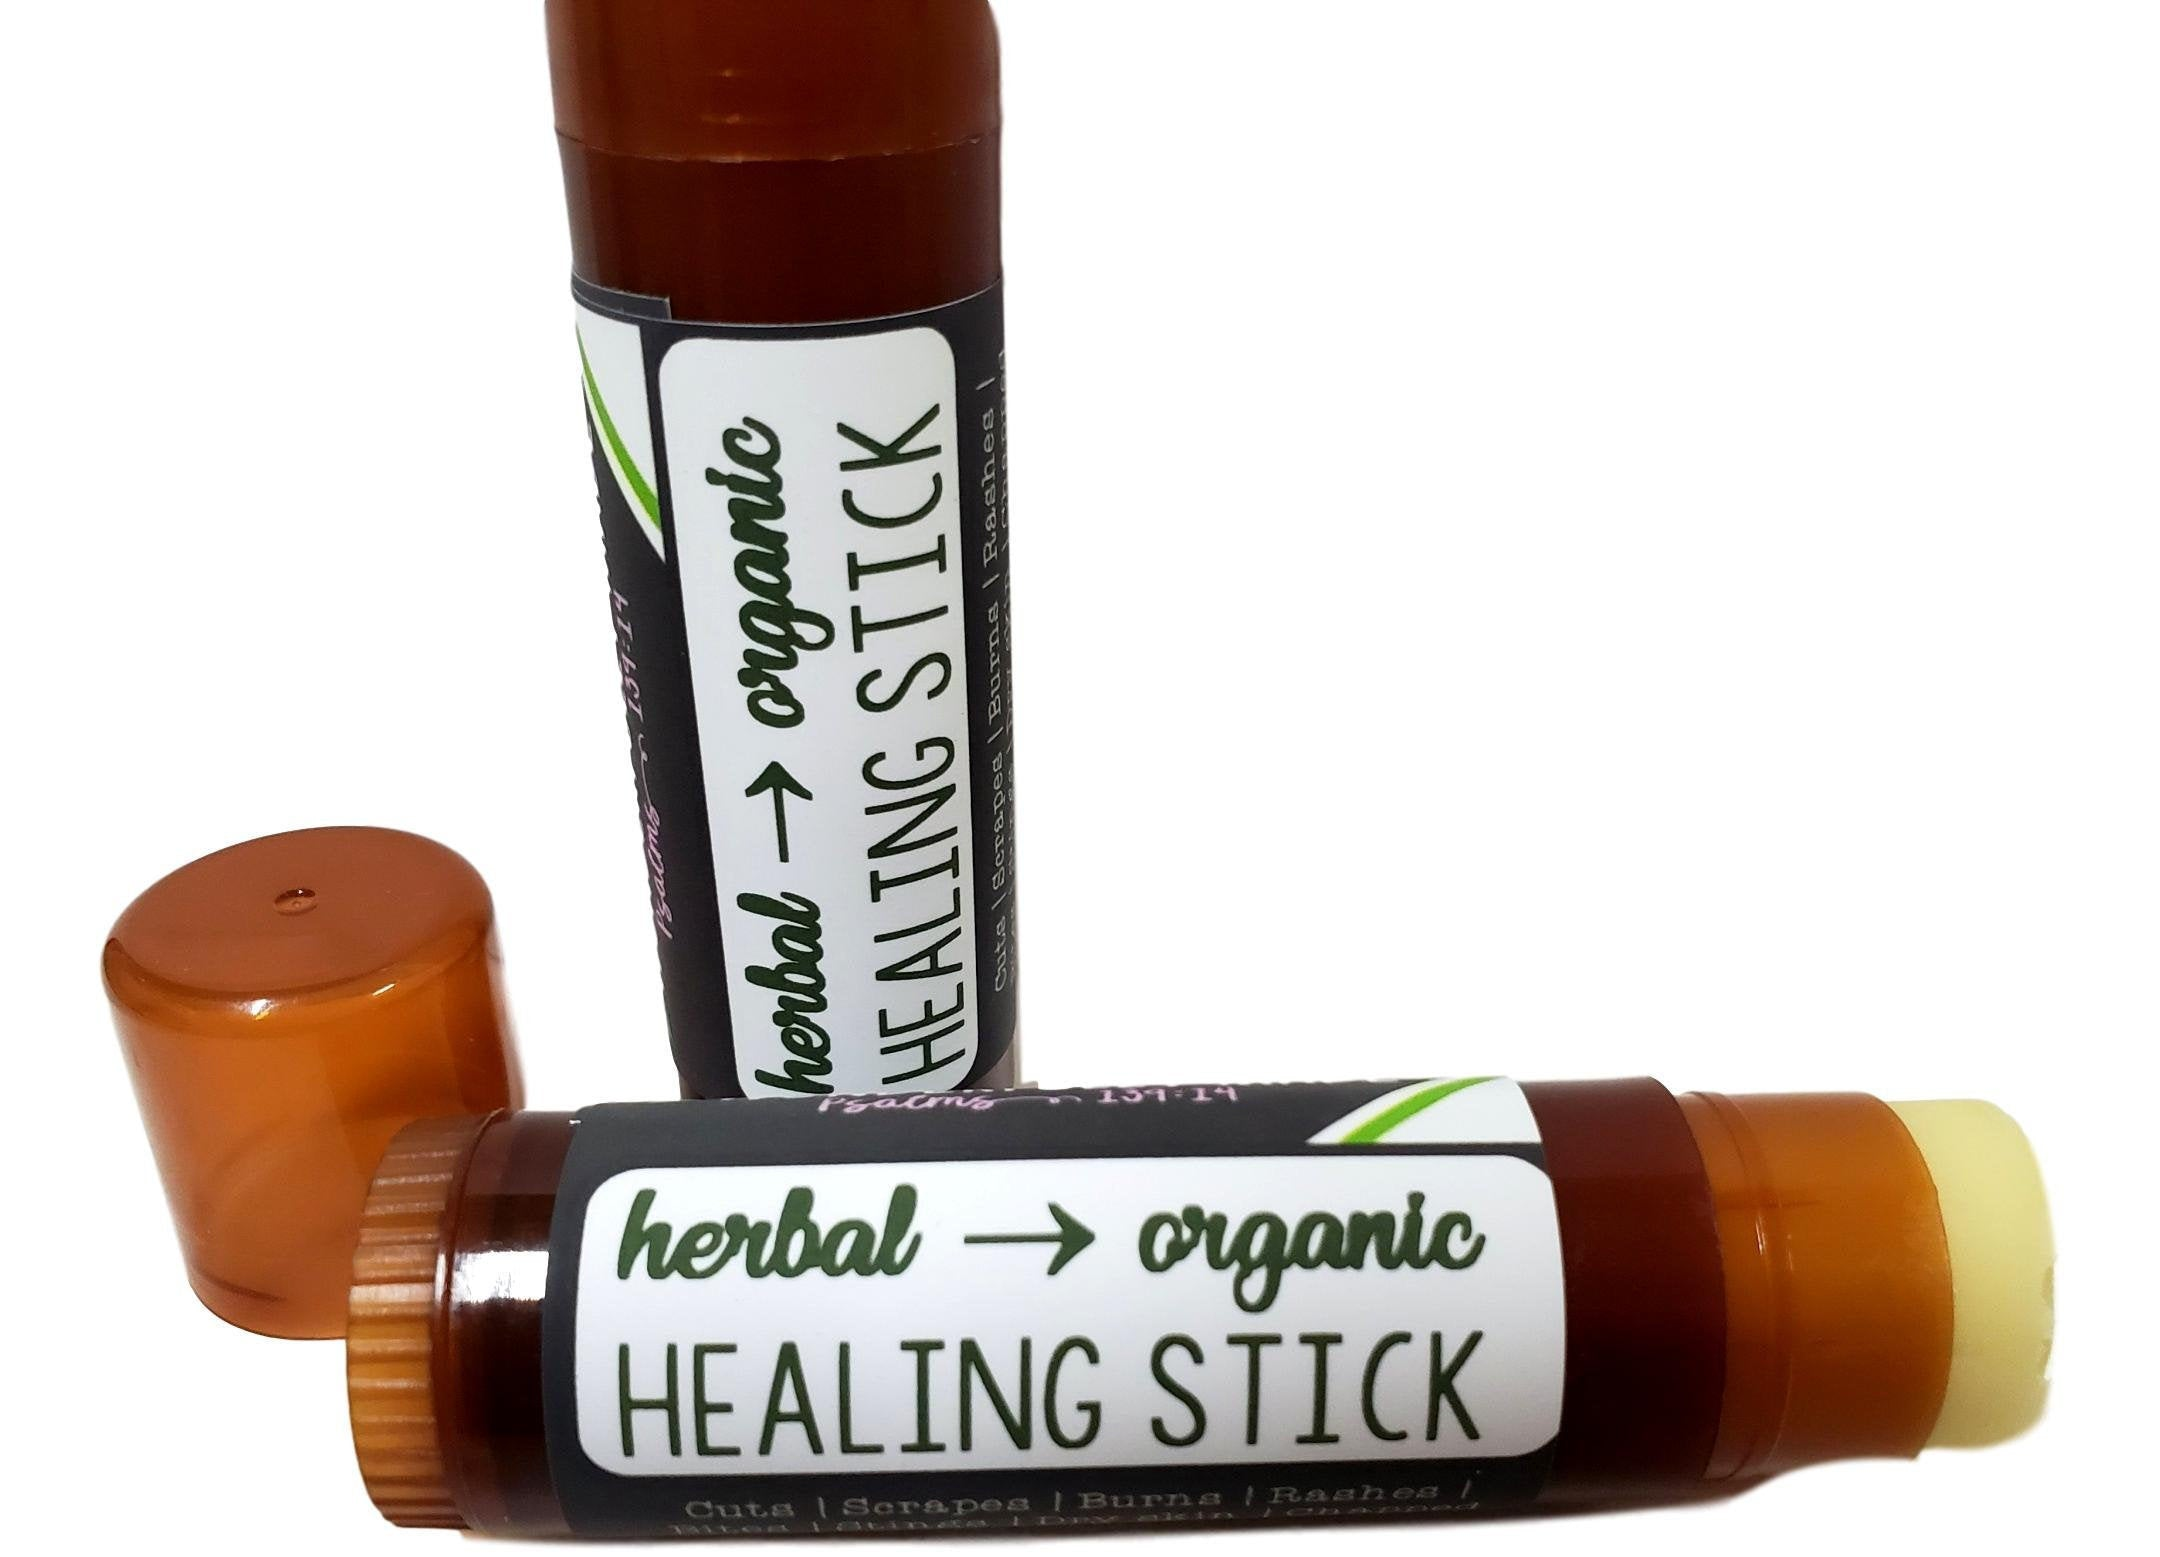 Herbal Healing Stick | Natural Remedy Salve | Organic Eczema Salve | Chapped Lip Relief | Large Chapstick | Scar Remover | Travel Size Tube